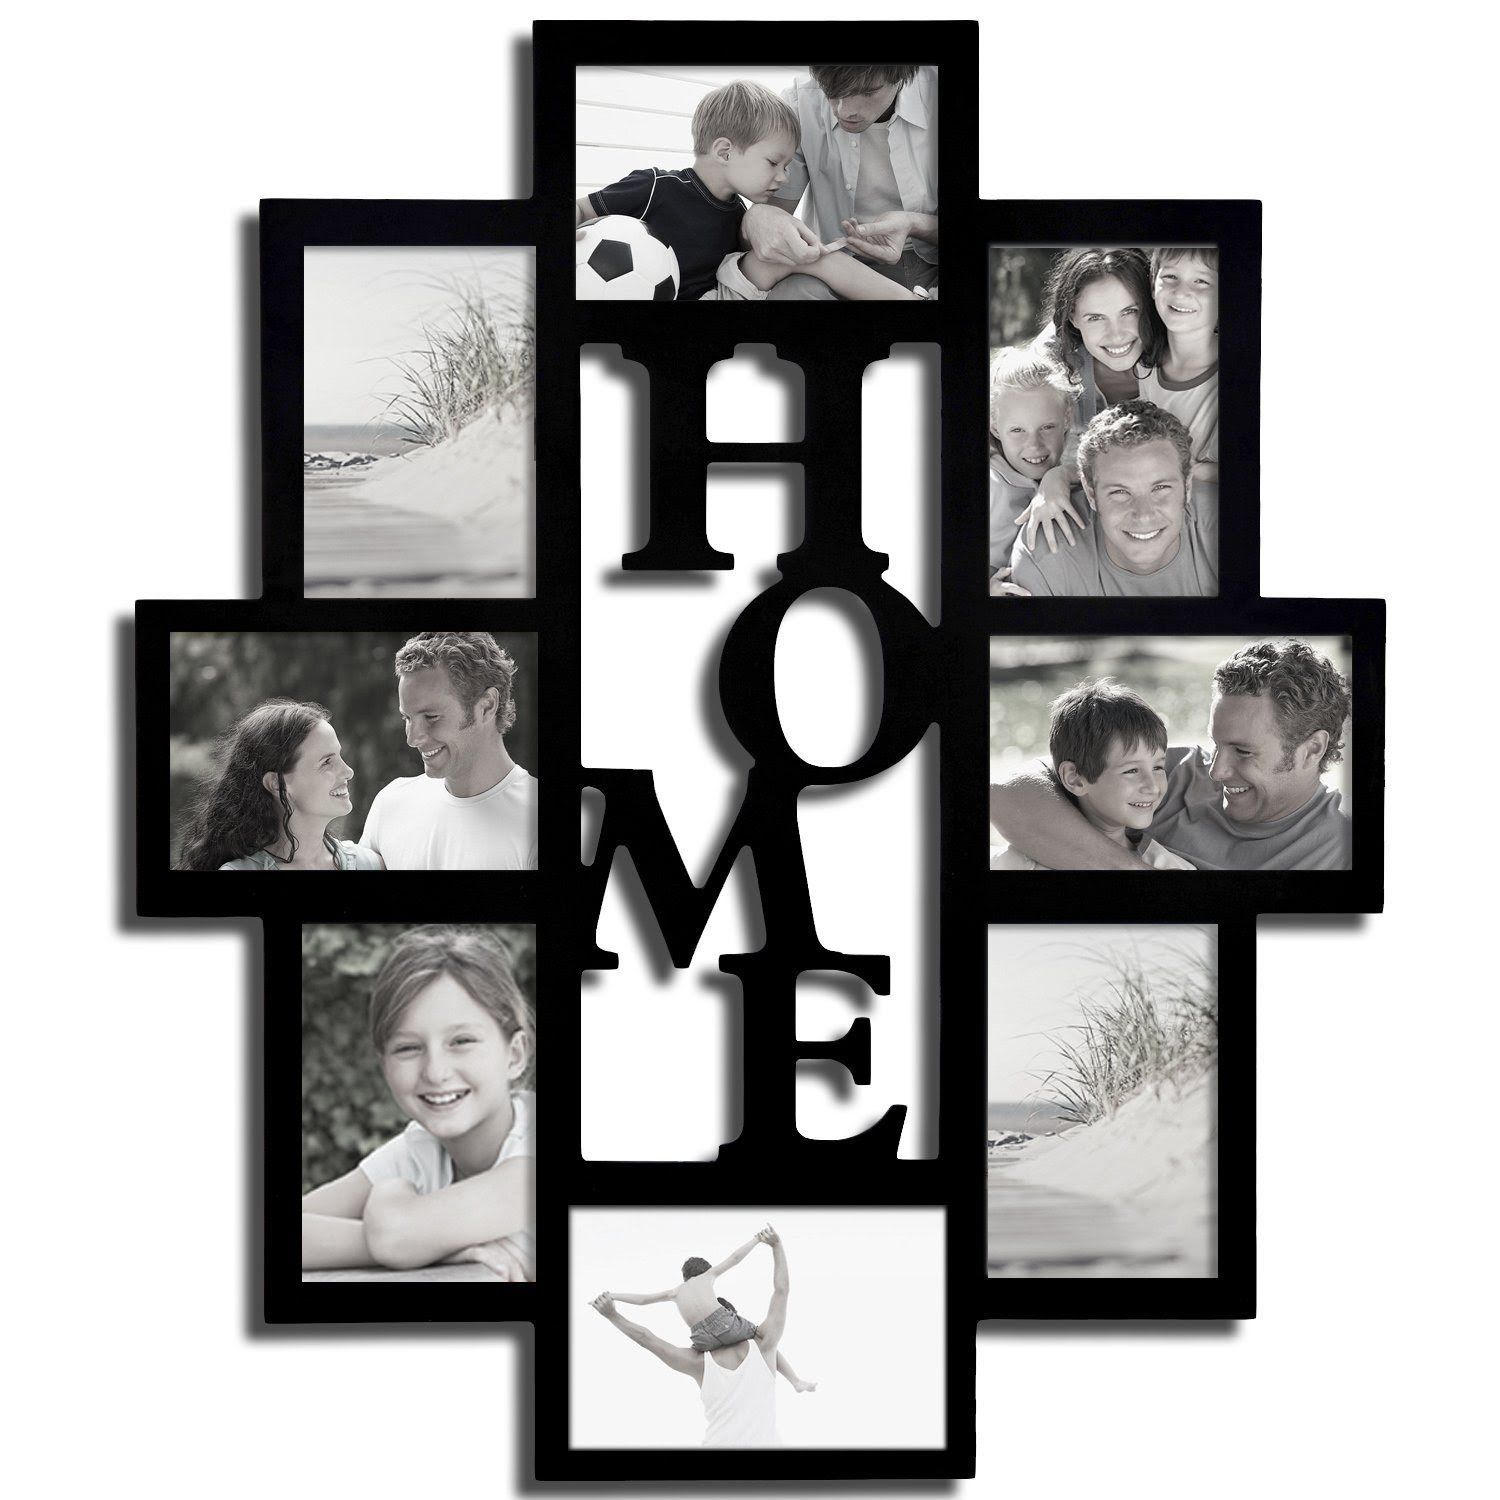 Adeco Adeco Black Wooden 8 Opening Home Collage Picture Frame Black